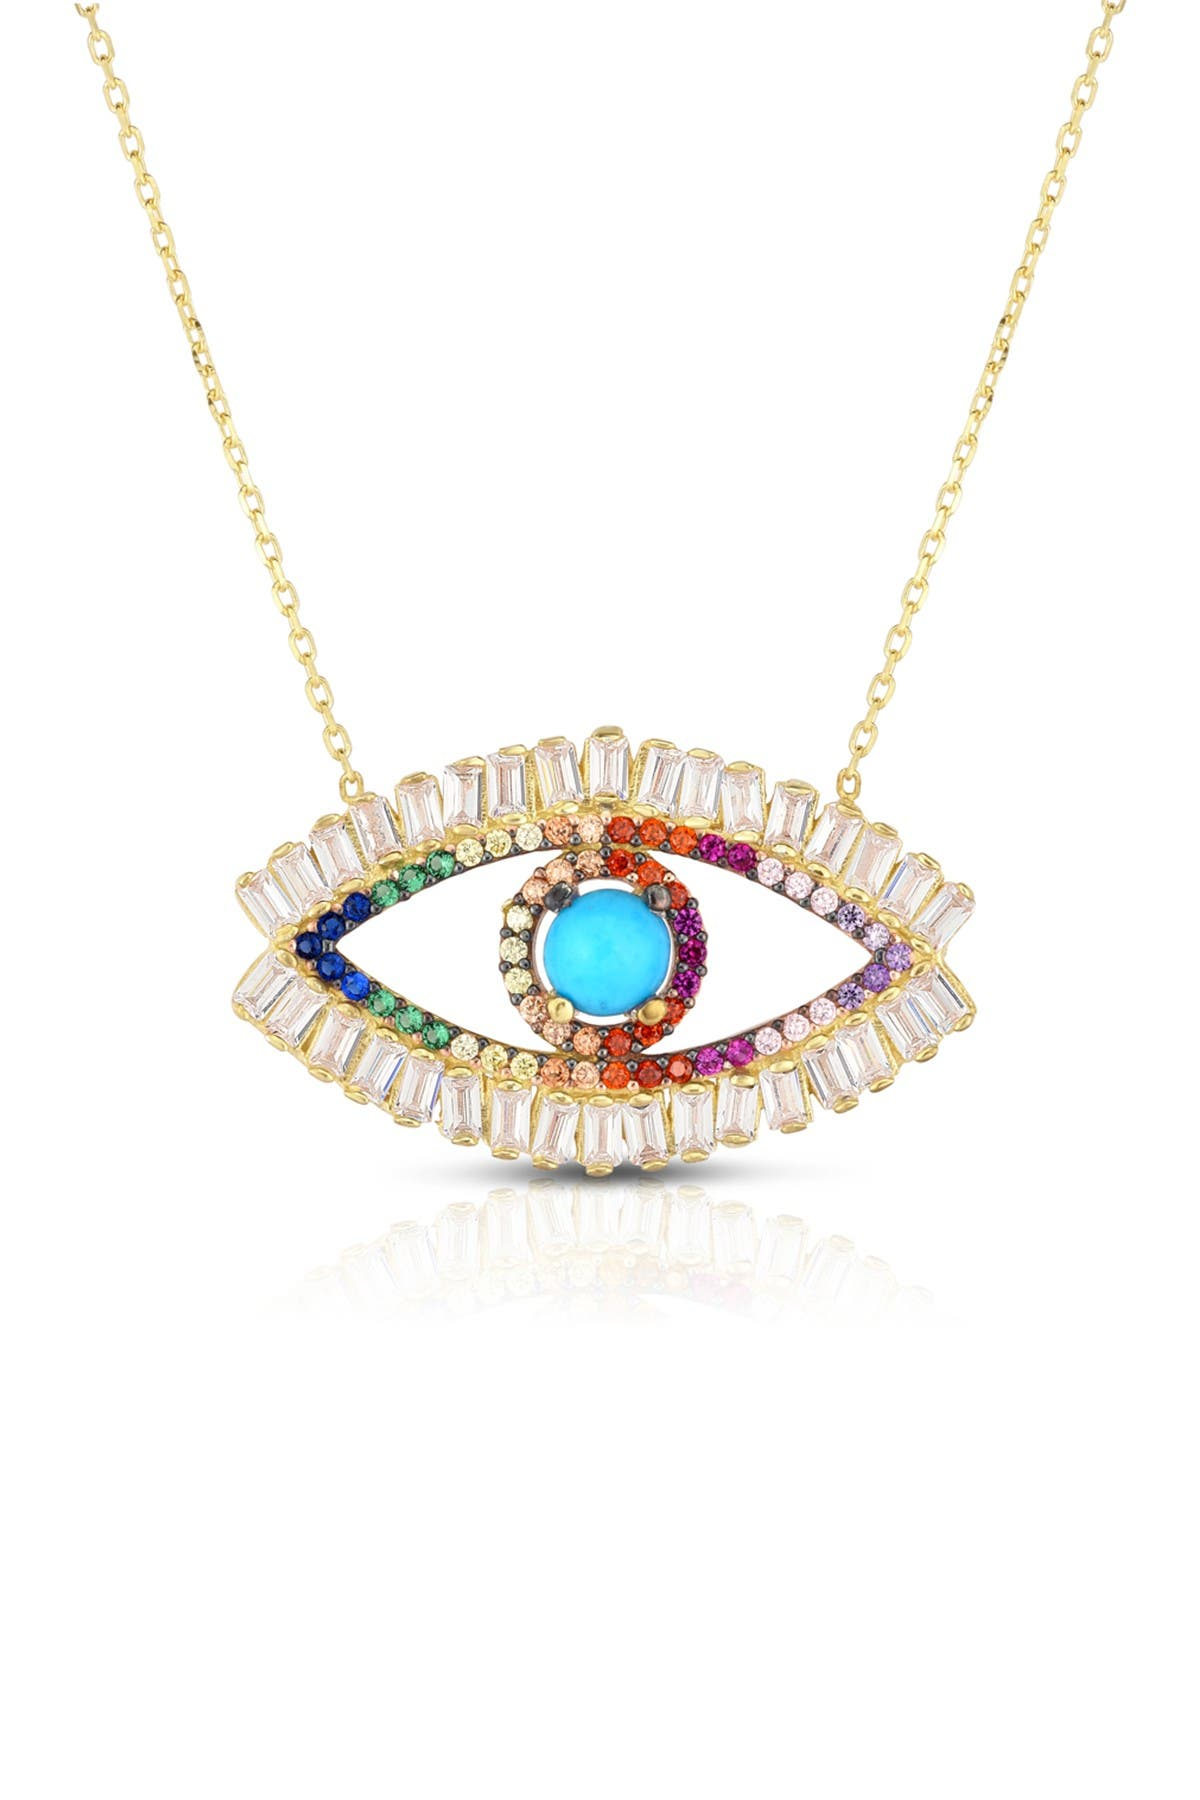 Image of Sphera Milano 14K Yellow Gold Plated Sterling Silver Turquoise & Pave Rainbow CZ Evil Eye Pendant Necklace